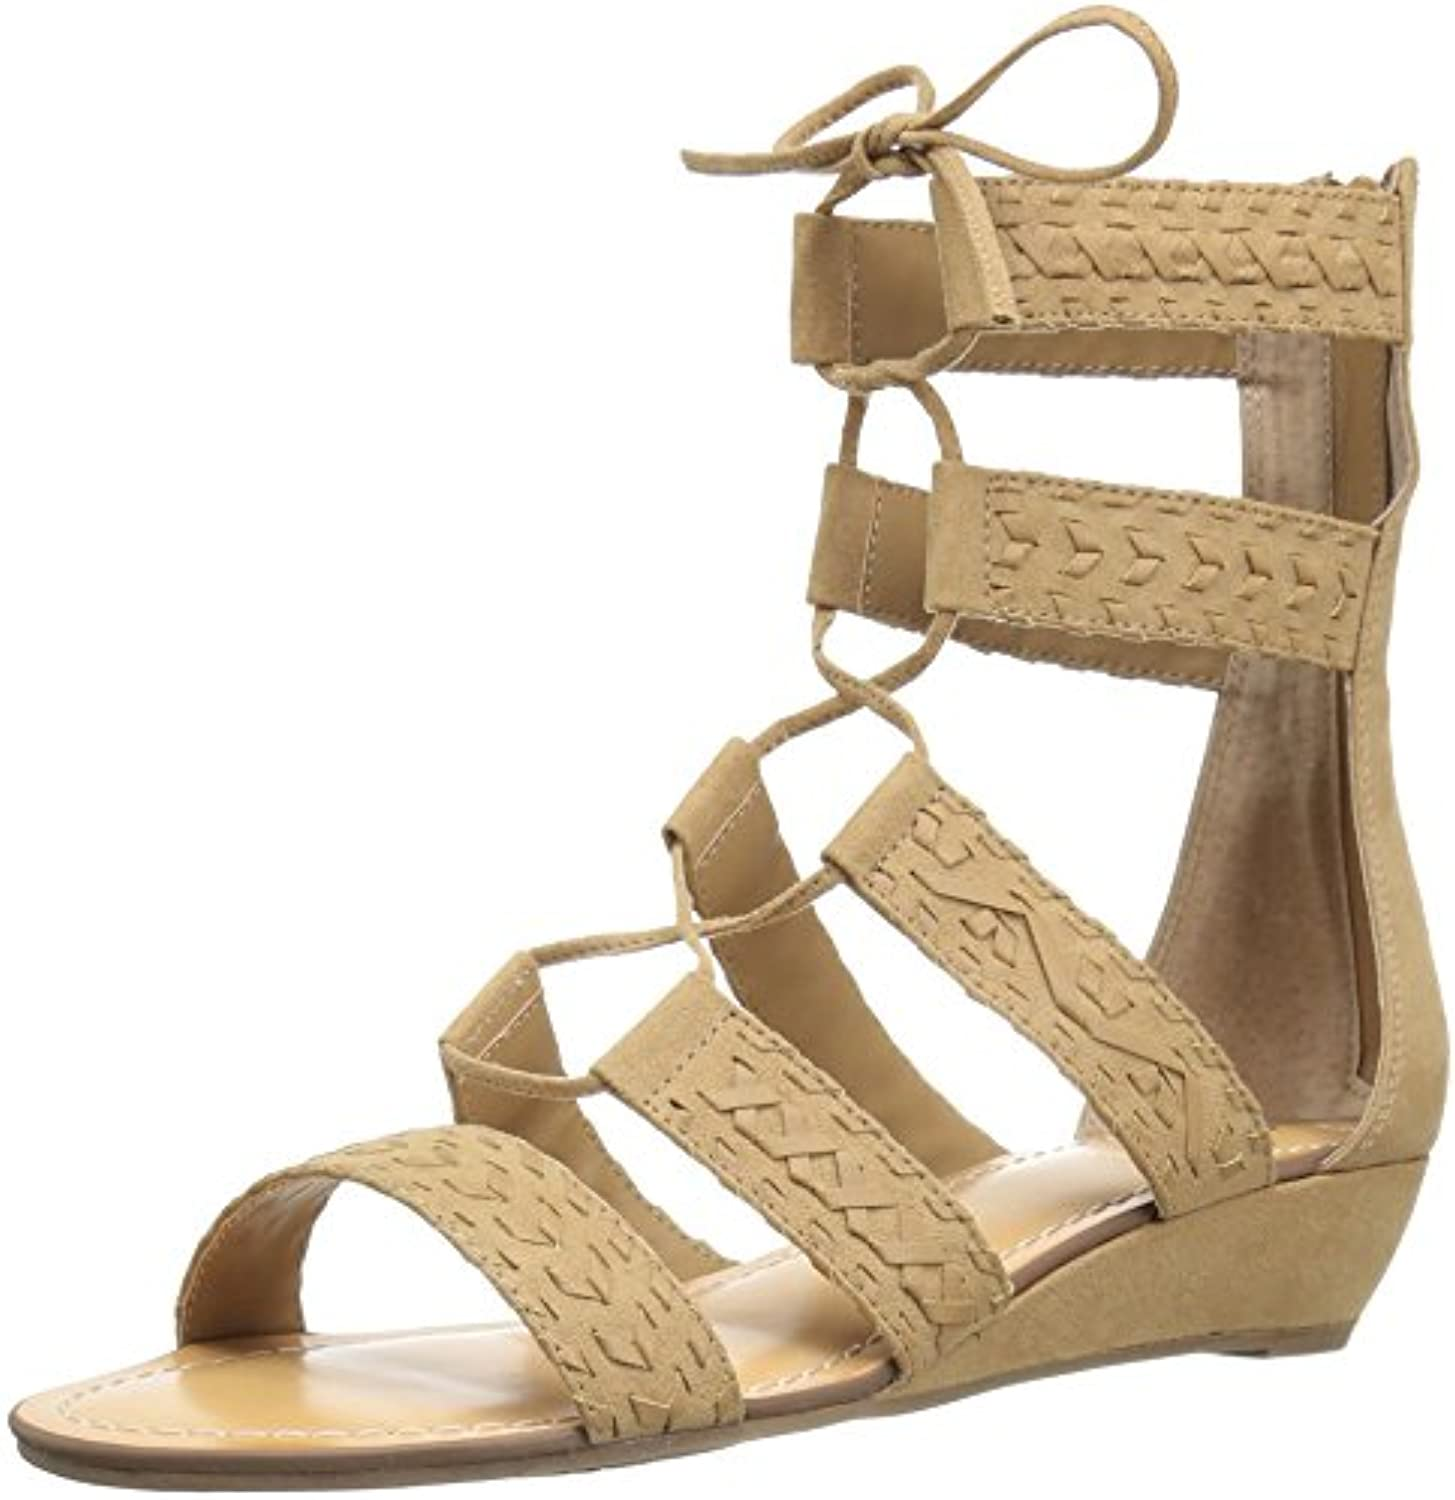 Carlos by by by Carlos Santana Kamilla Tessile Sandalo Gladiatore | Outlet Online  f87379